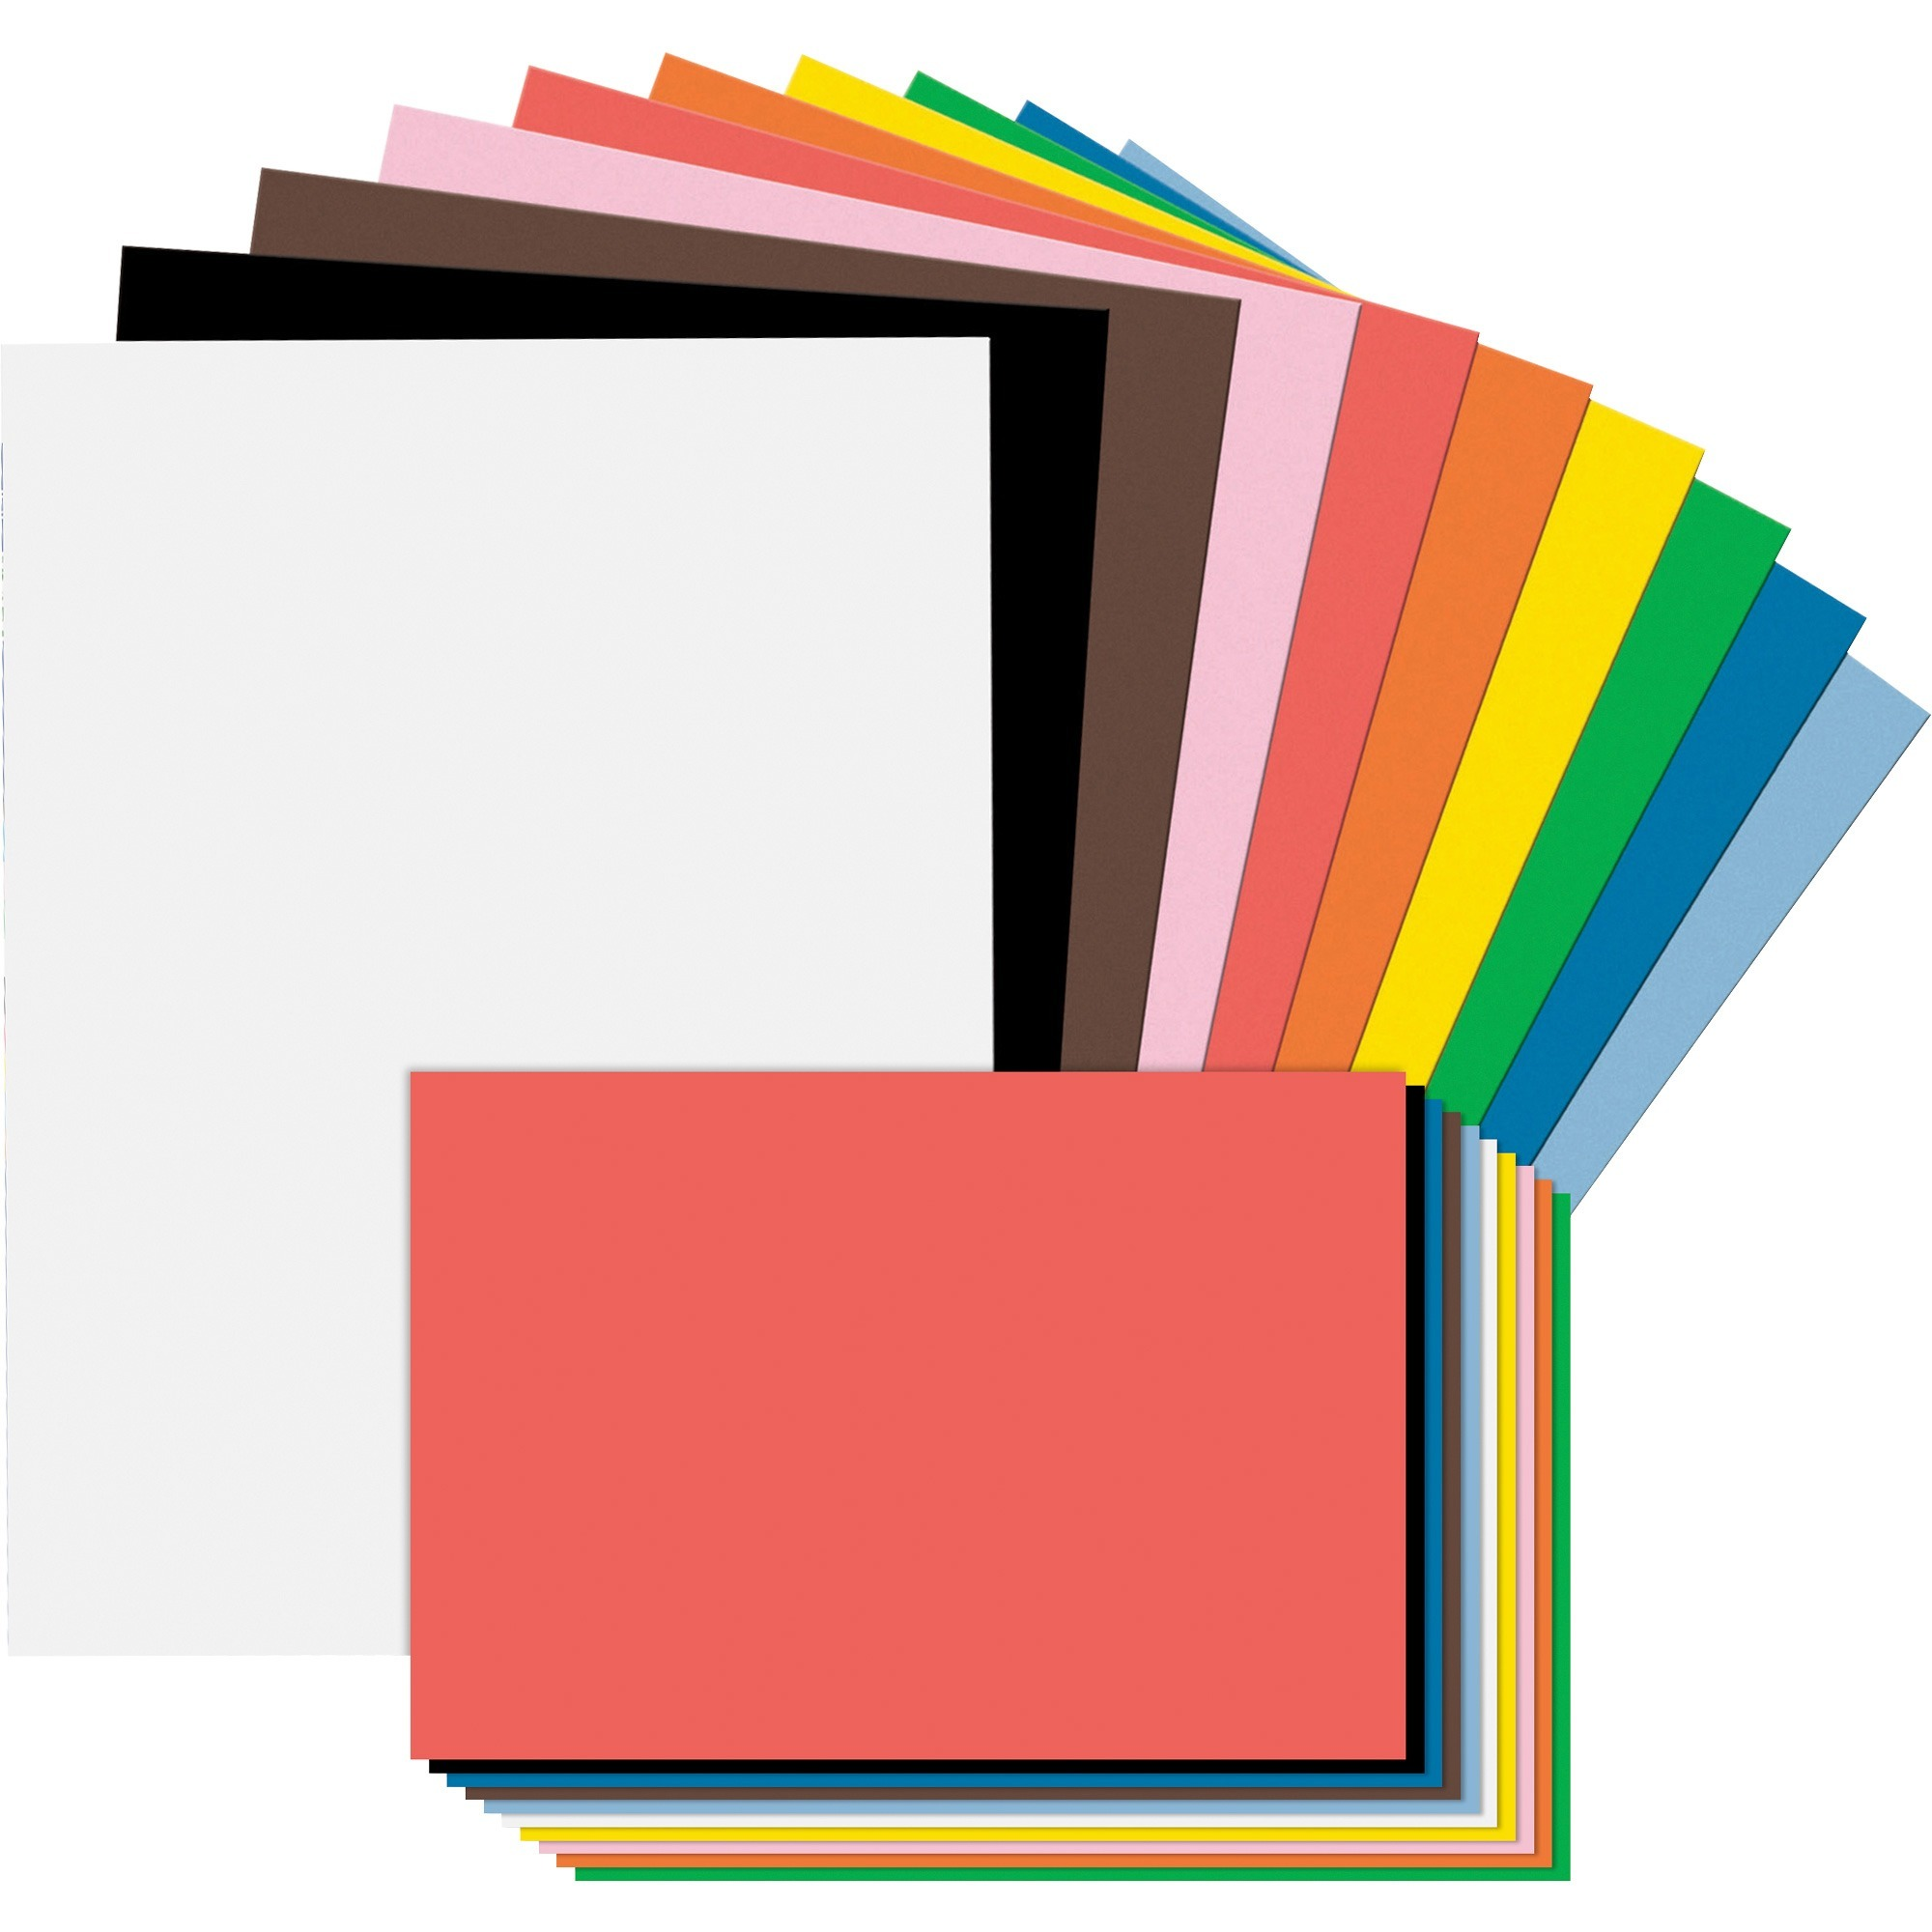 Tru-Ray, PAC104120, Construction Paper Combo Case, 1 Kit, Assorted